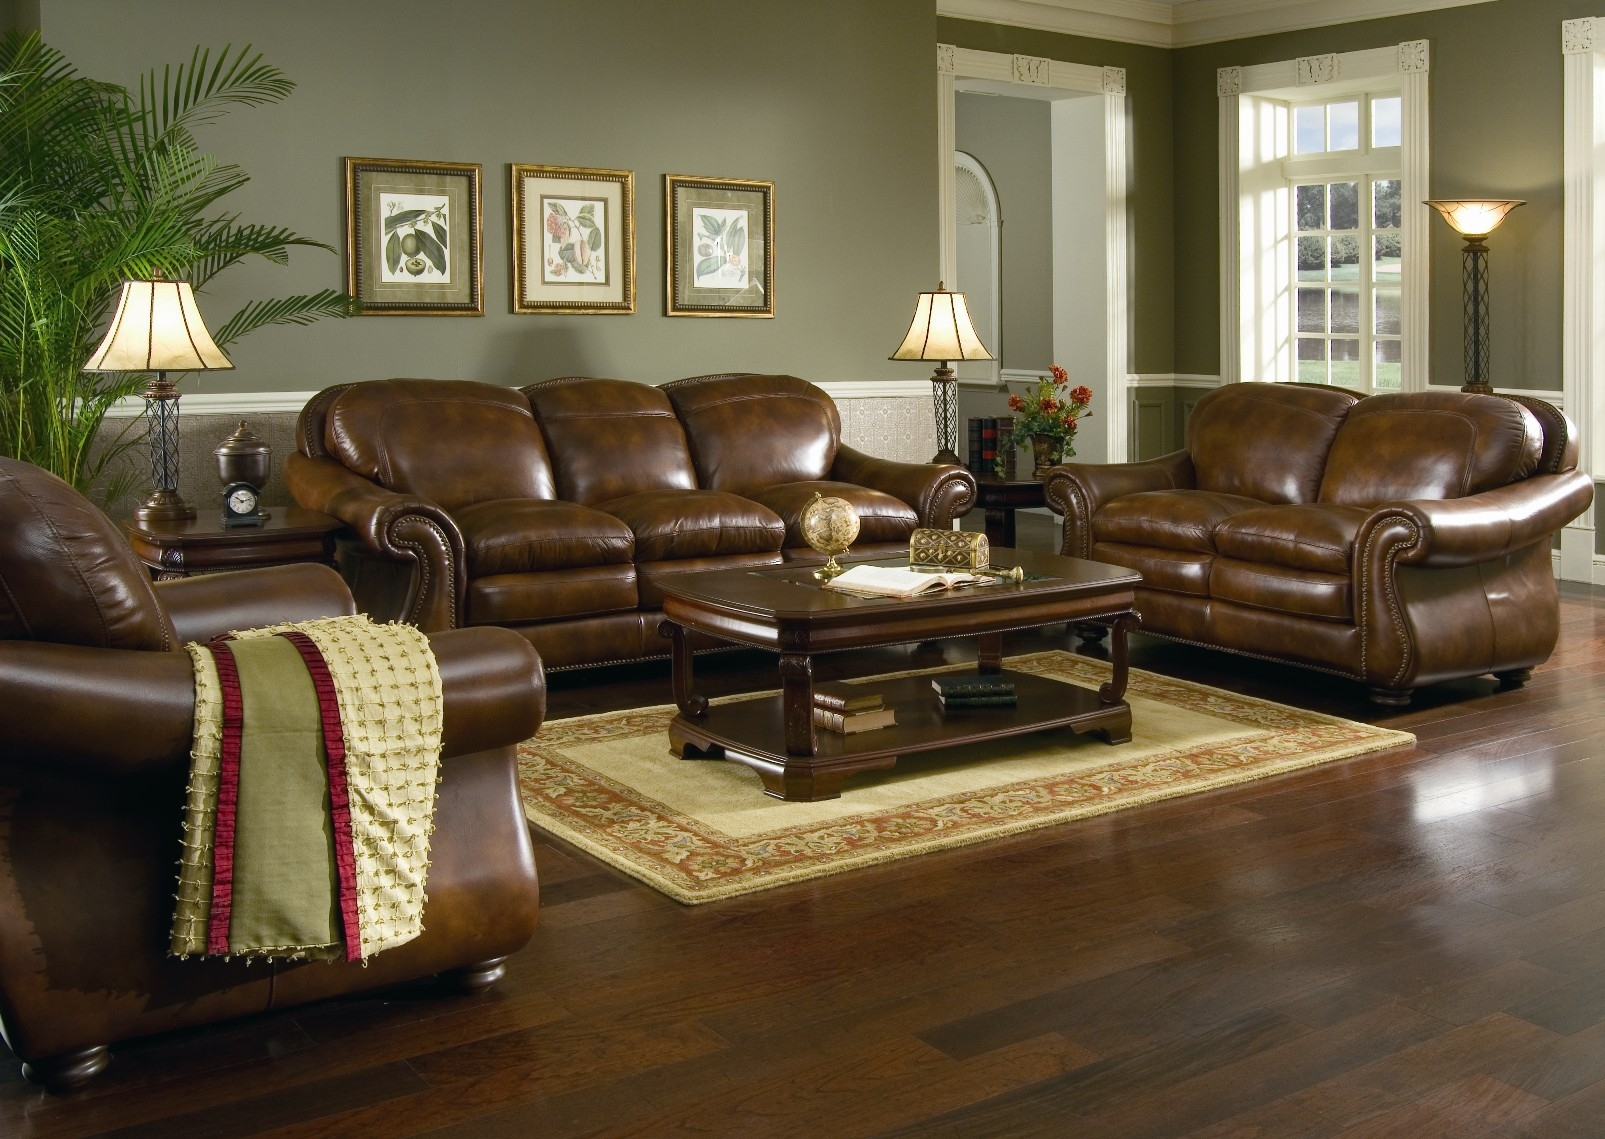 Leather Living Room Leather Living Room Sets Full Leather For Living Room Sofas And Chairs (Image 6 of 15)